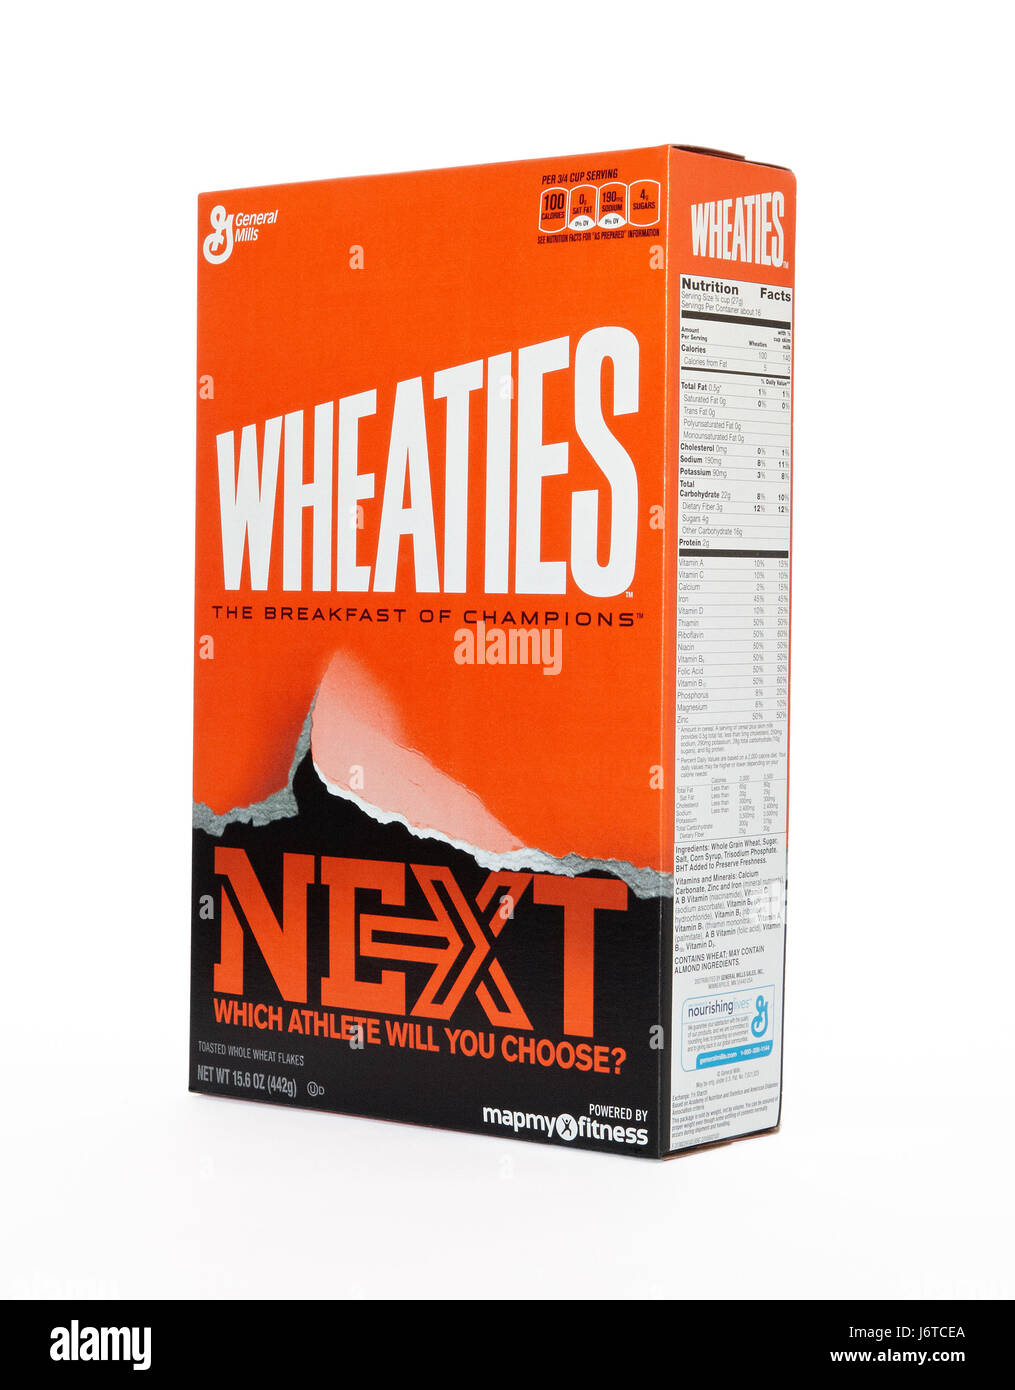 Box of Wheaties Cereal - Stock Image